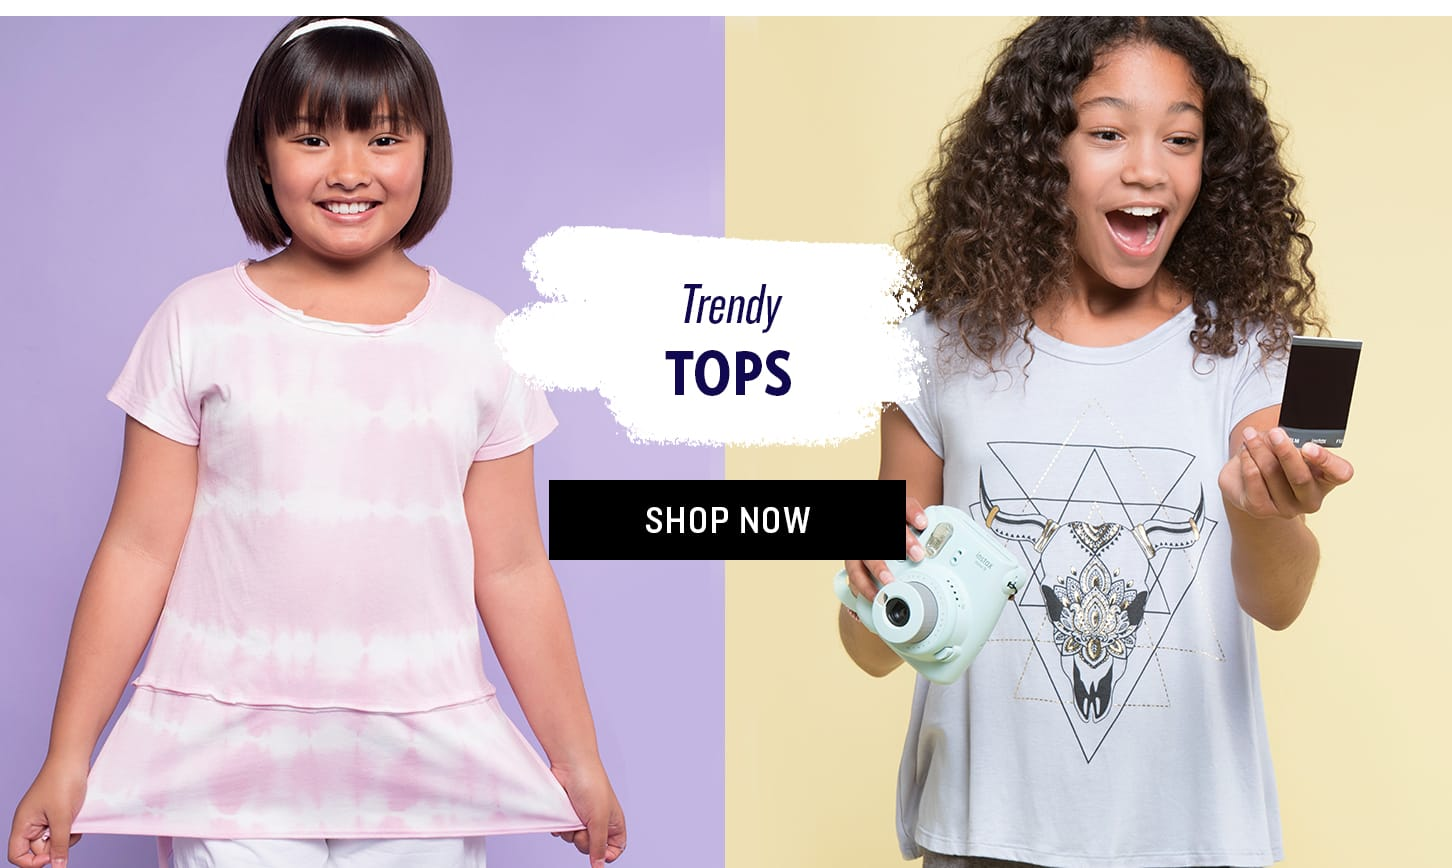 Shop Girls' Trendy Tops